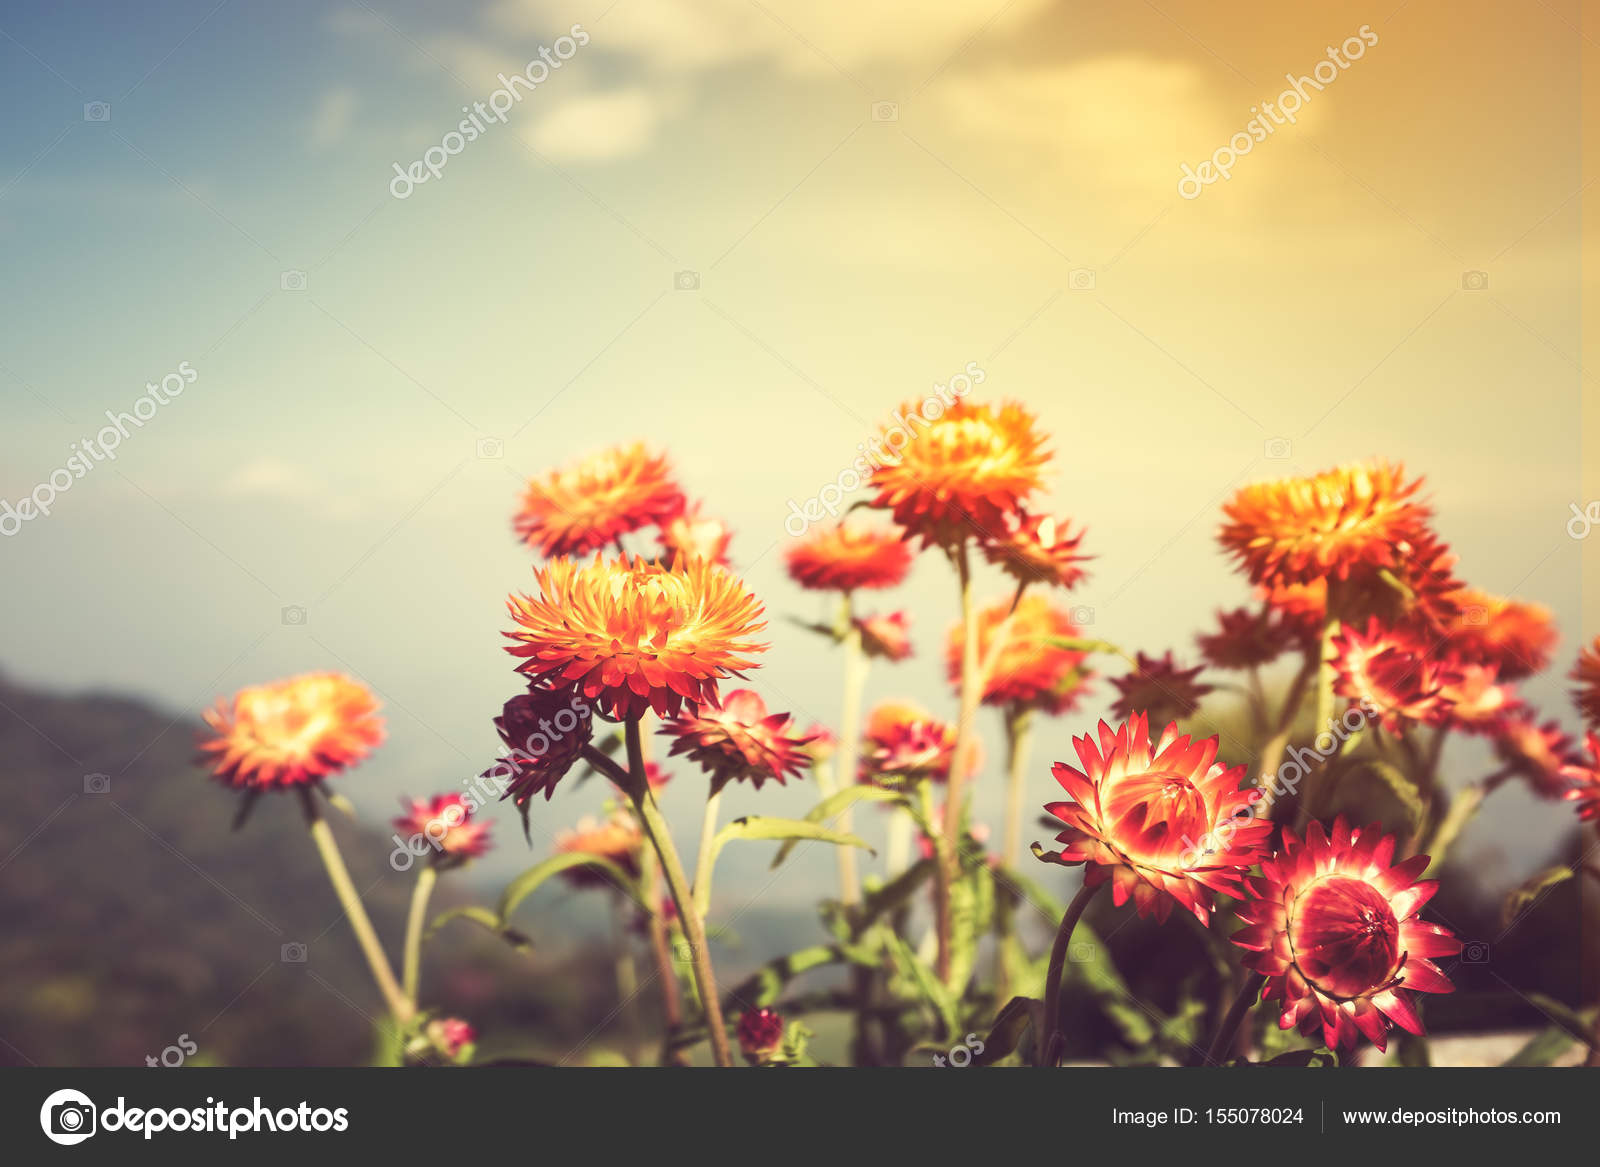 Beautiful bouquet of colorful dry straw flowers or everlasting with beautiful bouquet of colorful dry straw flowers or everlasting over blue sky with clouds outdoor at the daytime on summer day with sunlight izmirmasajfo